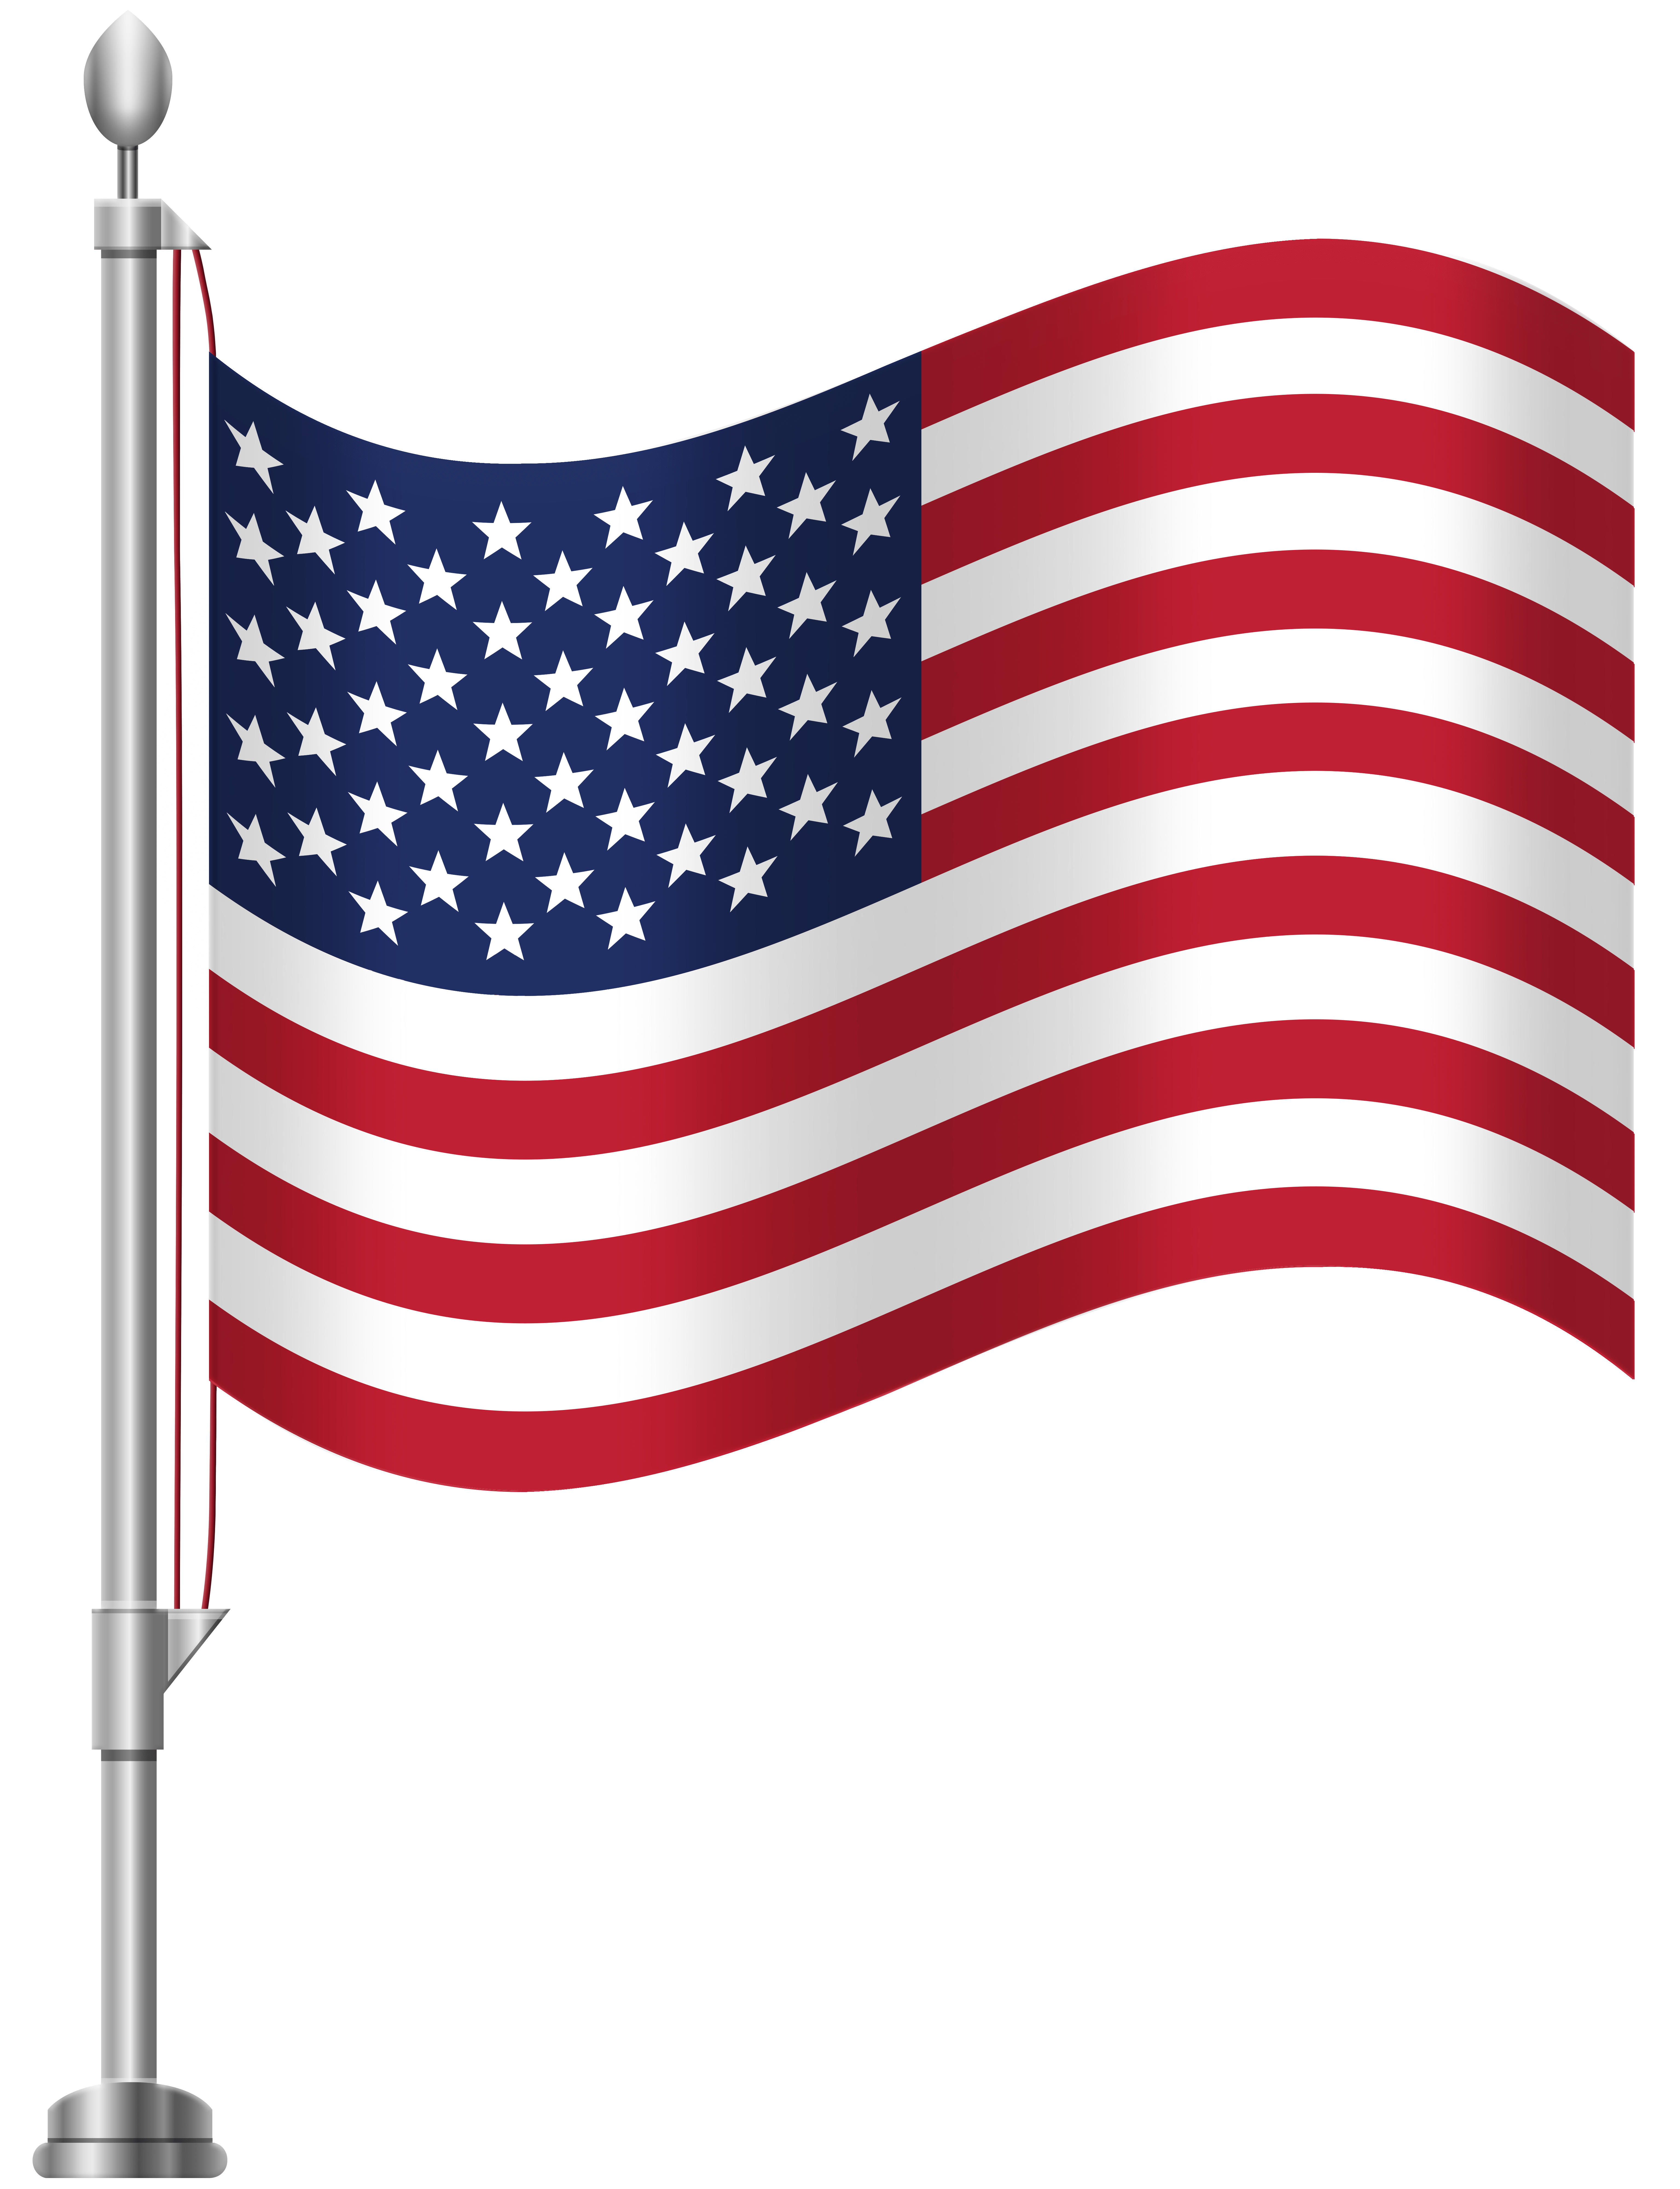 American Flag Clipart Png : american, clipart, Library, American, Banner, Freeuse, Download, Files, ▻▻▻, Clipart